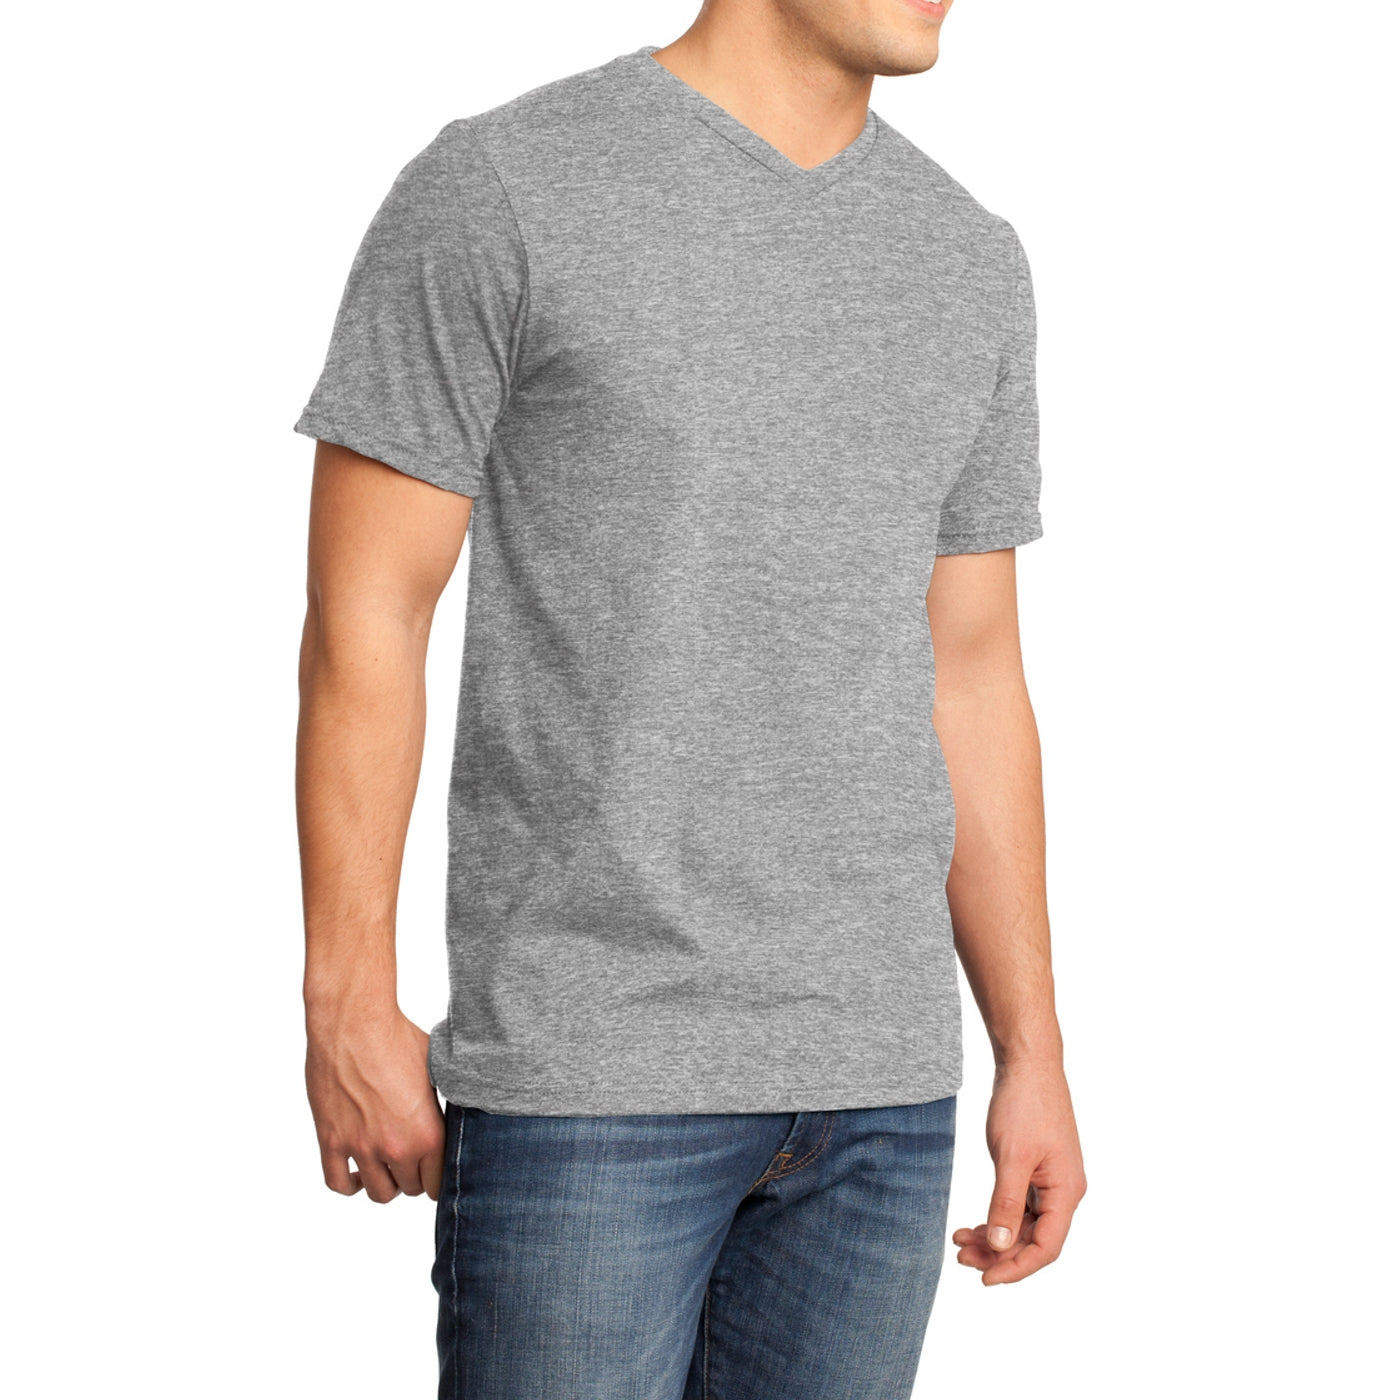 Men's Young  Very Important Tee V-Neck - Light Heather Grey